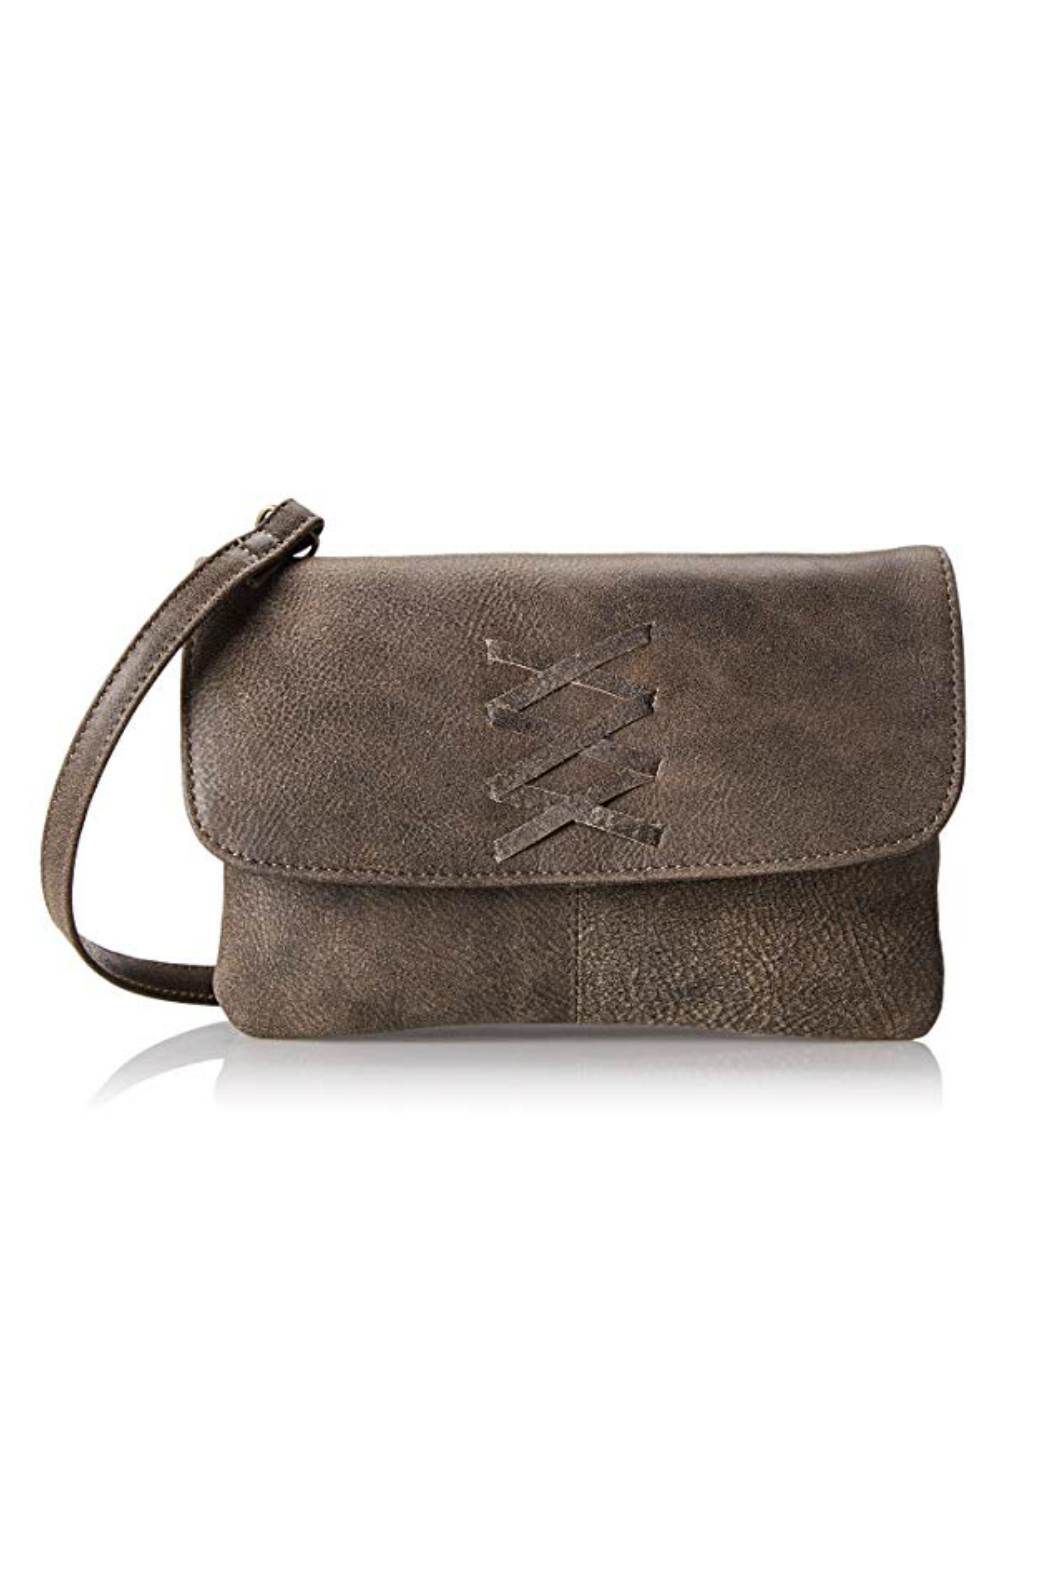 Latico Leathers Meredith Crossbody Clutch - Front Cropped Image